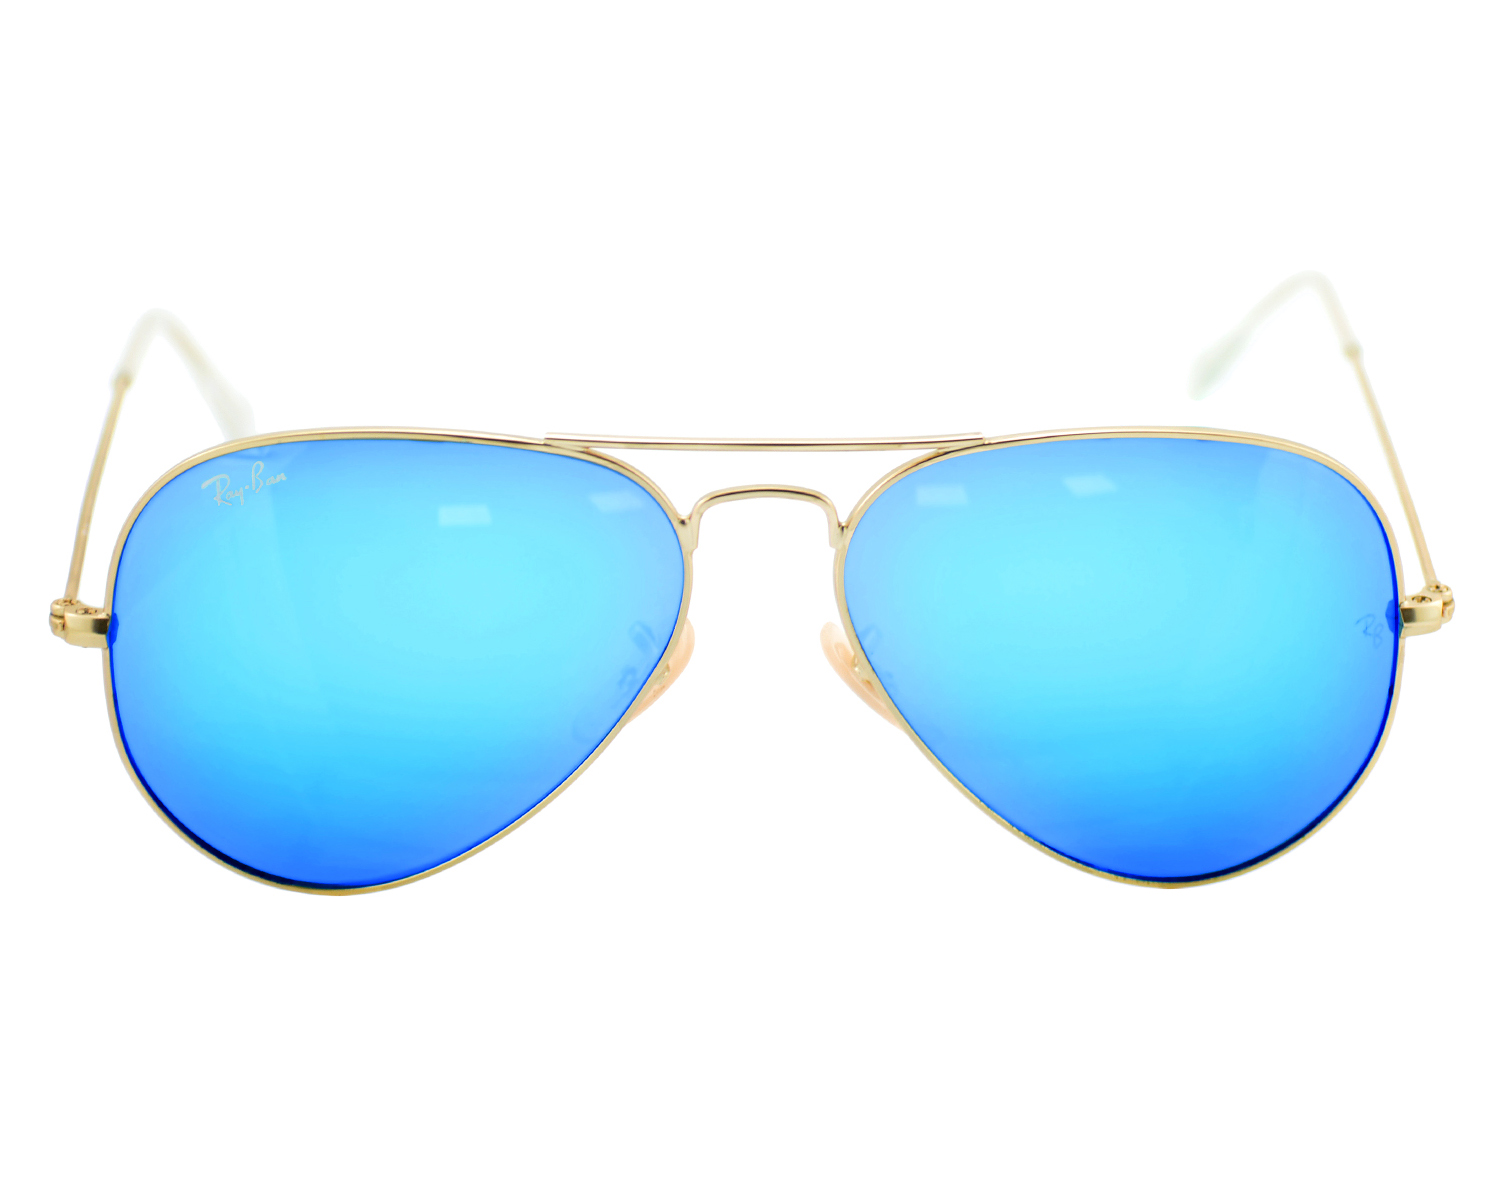 47a5a90d993c0 Ray-Ban RB3025 AVIATOR FLASH LENSES 112 17 Gold